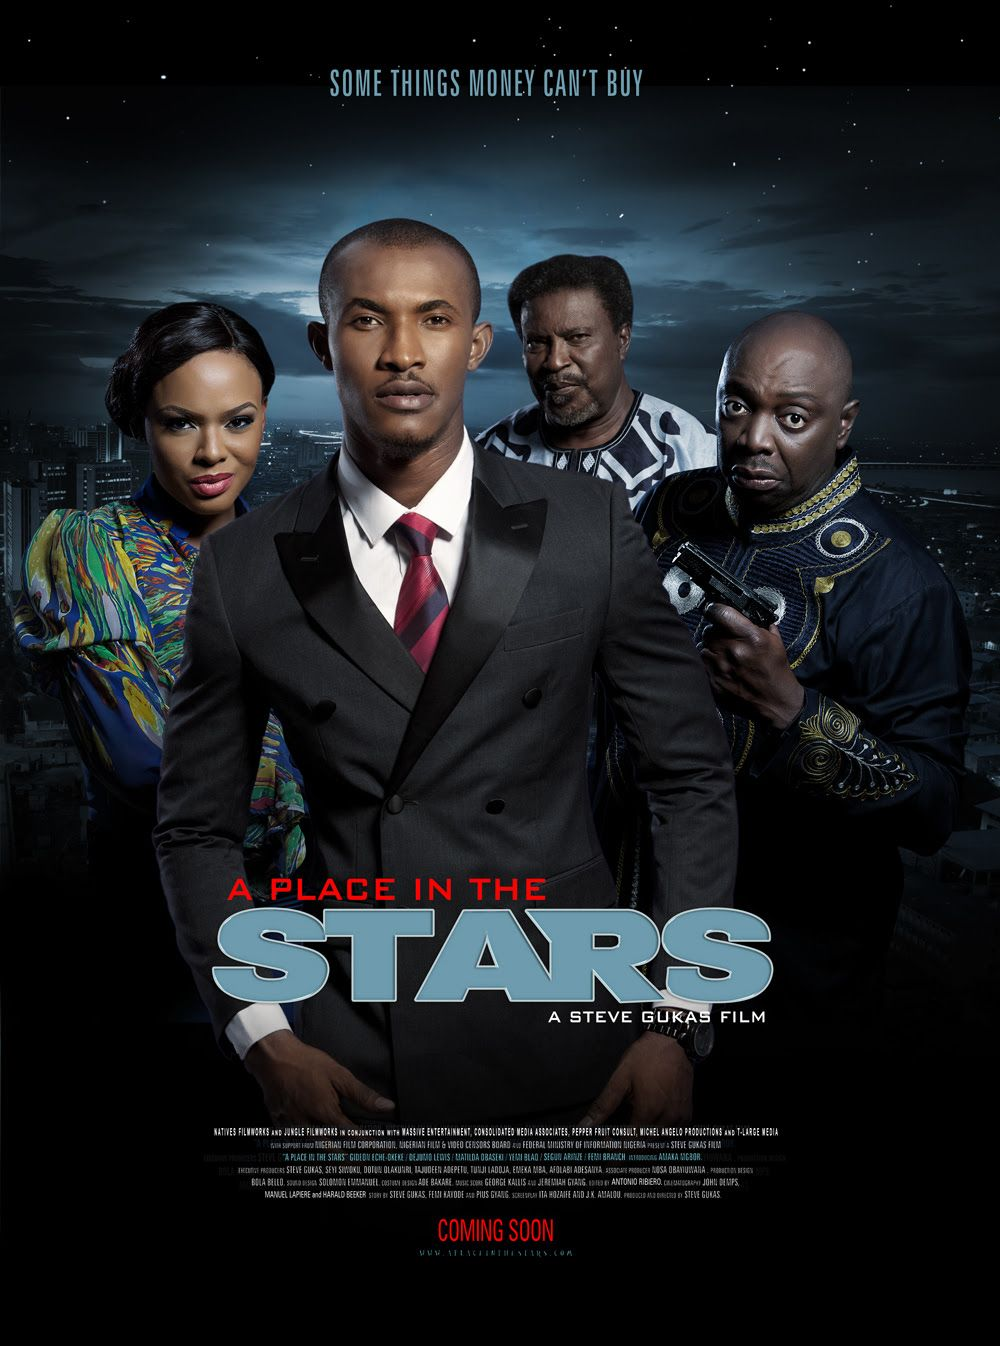 A Place in the Stars - BN Movies & TV - August 2014 - BellaNaija.com 01